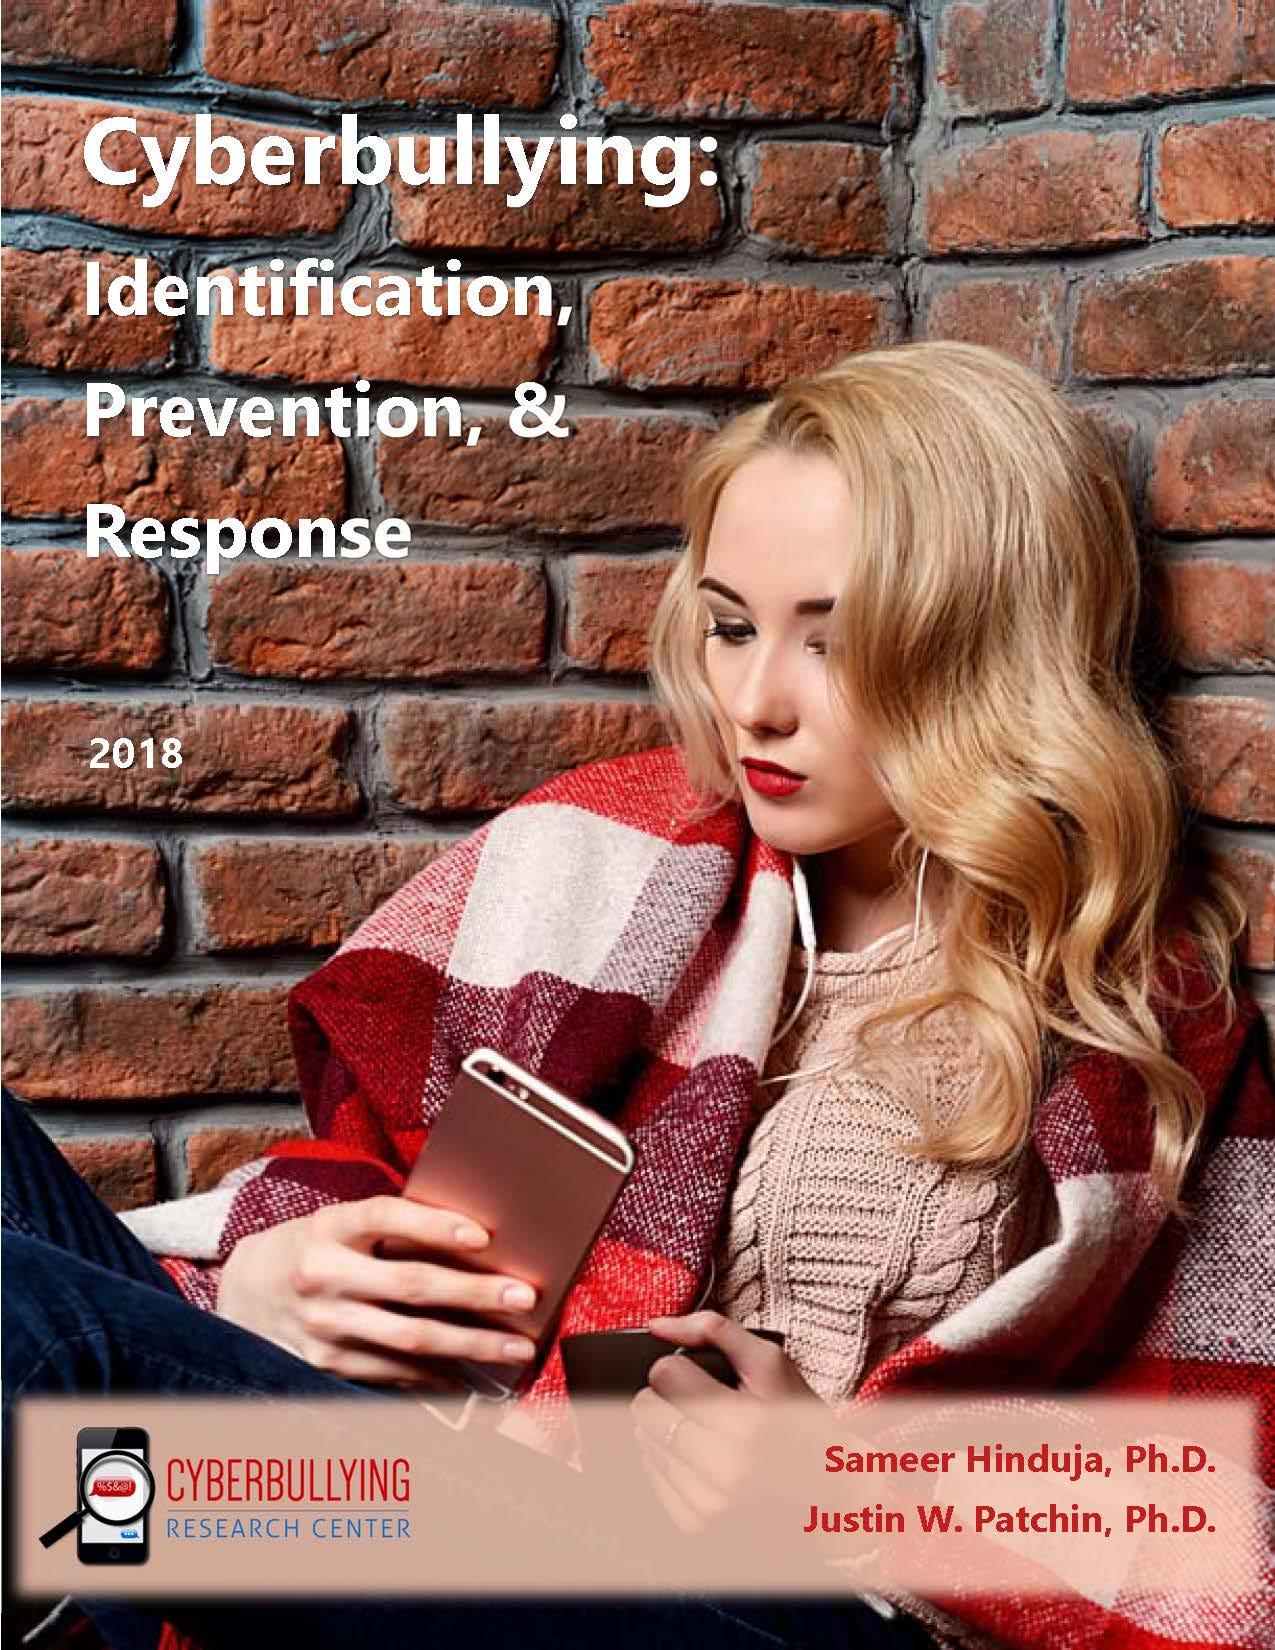 Cyberbullying Fact Sheet Identification Prevention And